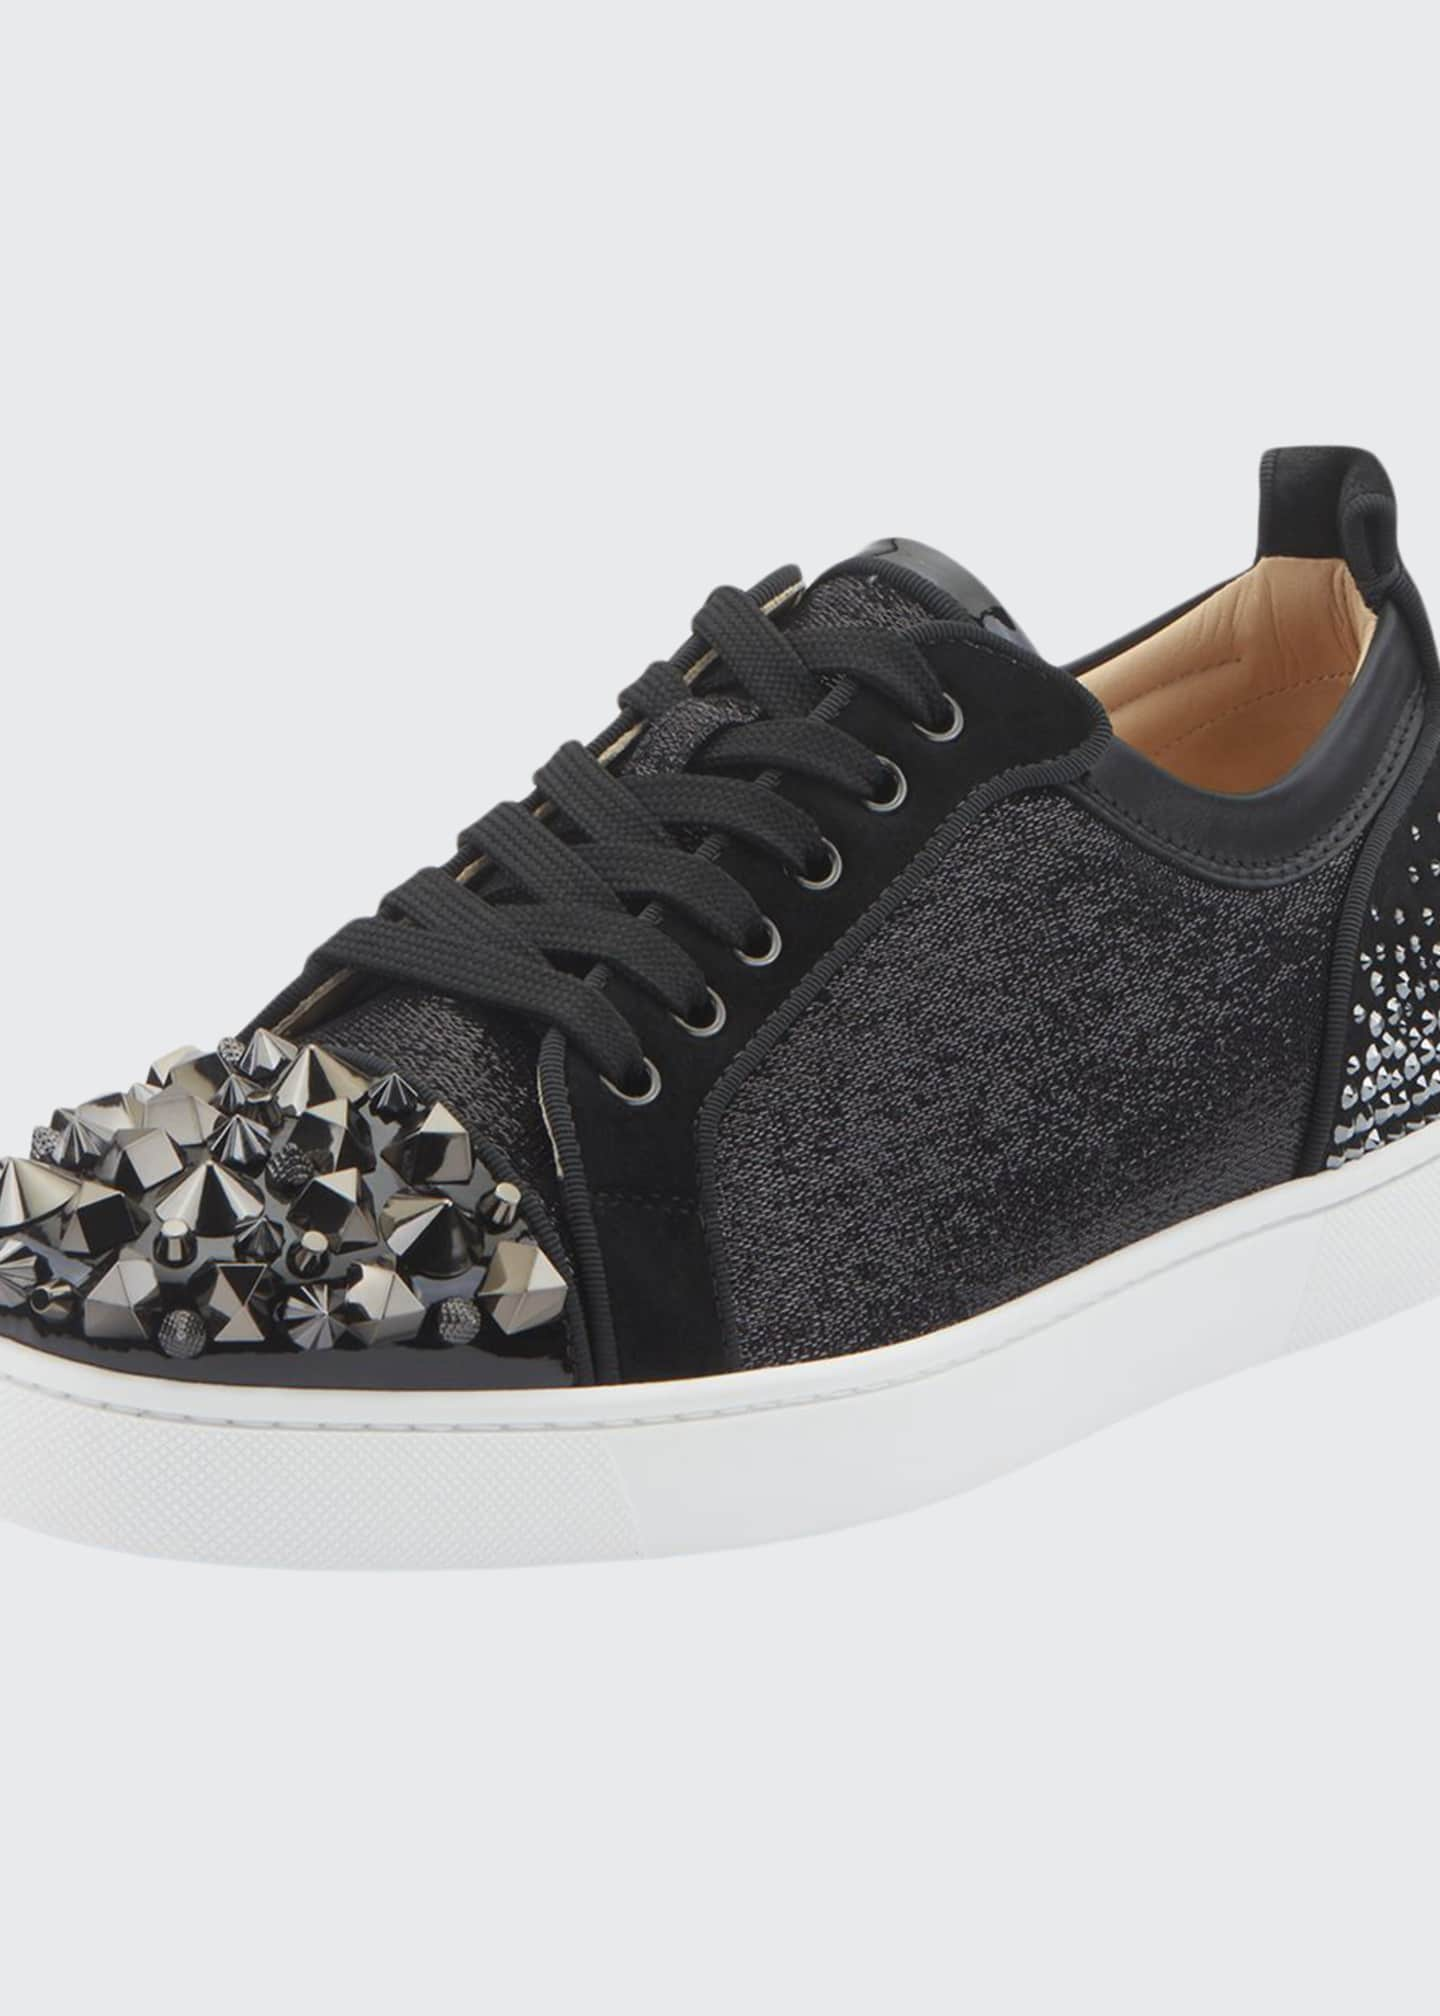 Christian Louboutin Men's Louis Junior Spike Low-Top Sneakers